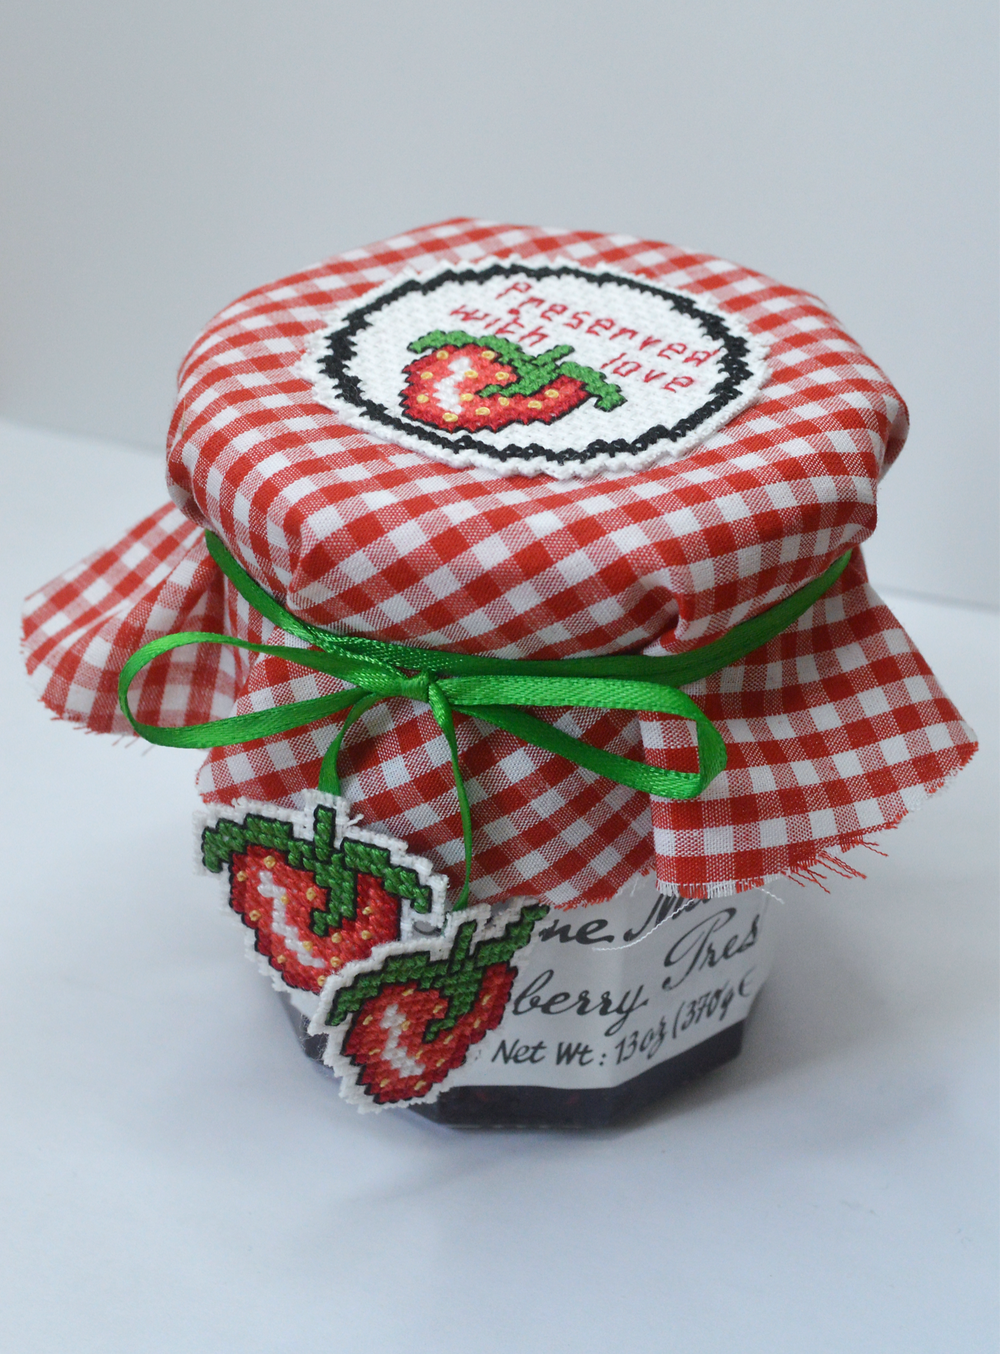 A jam jar with a red gingham cover.